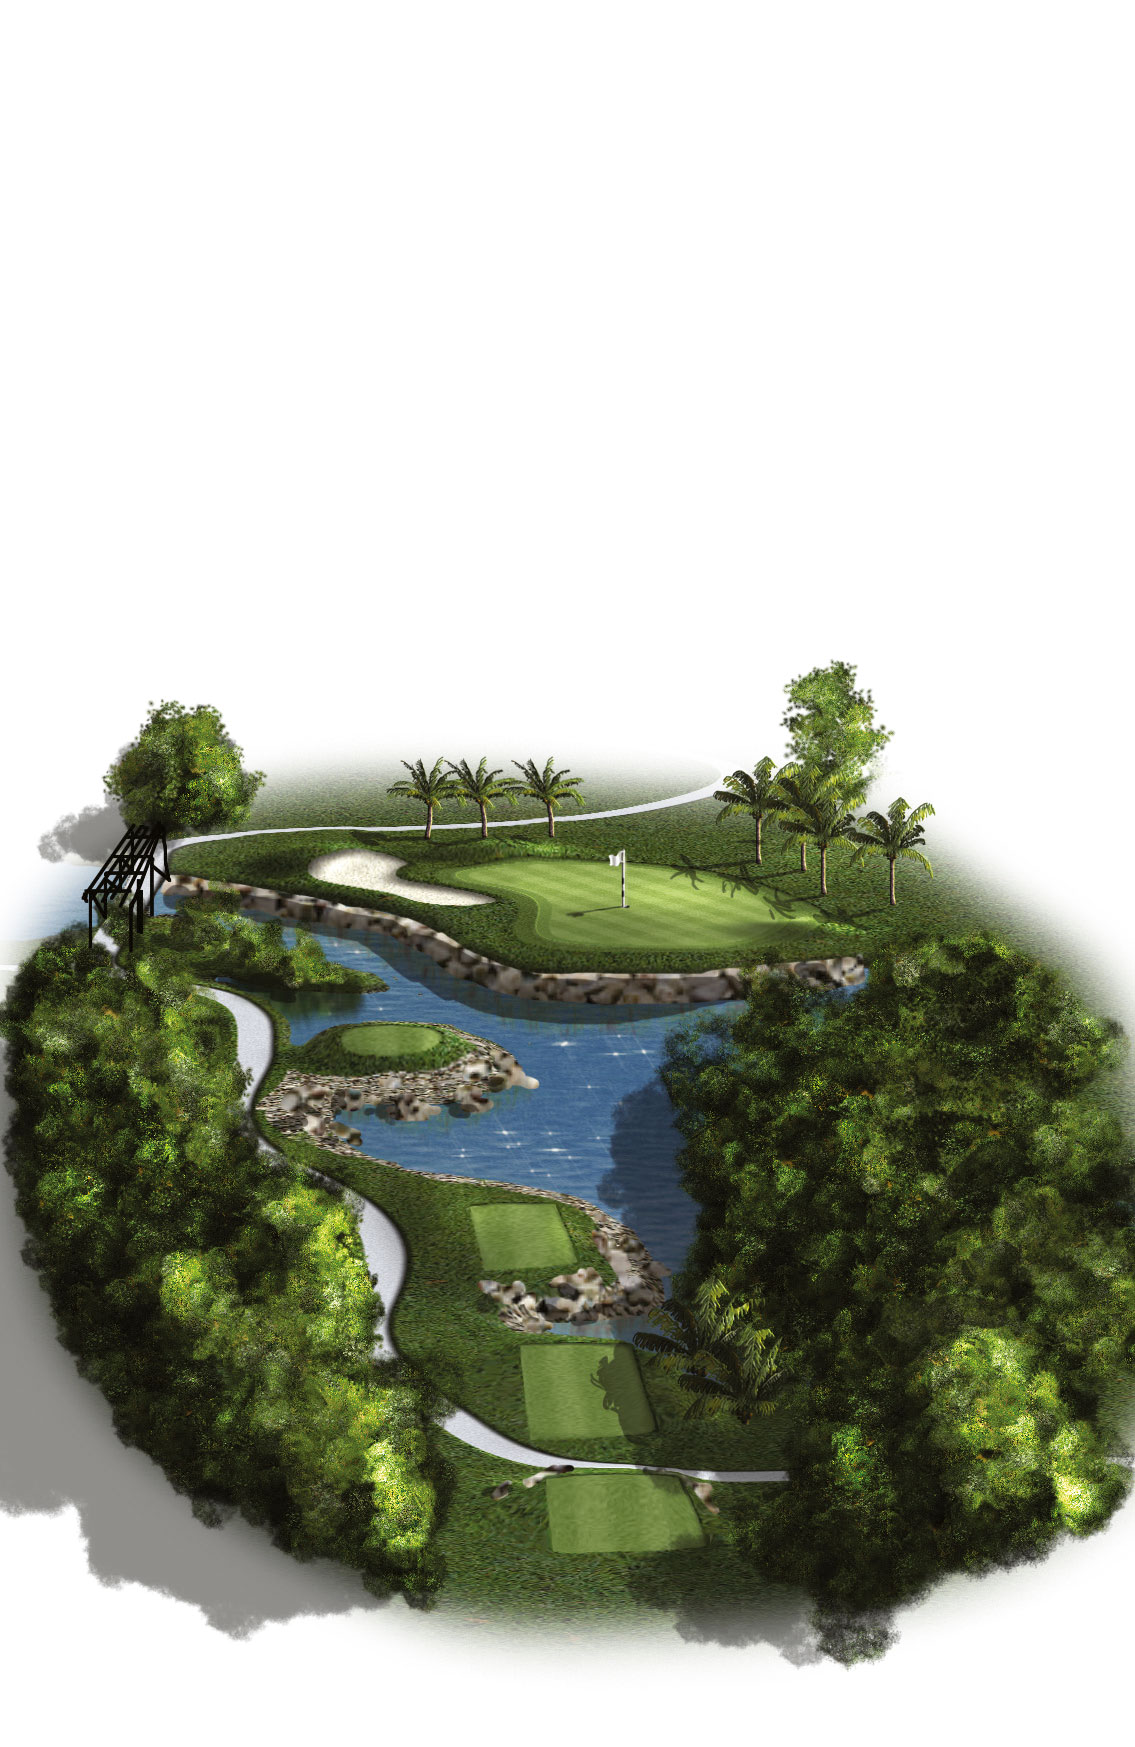 8th Hole - Par 3 (183 meters/201 yards)